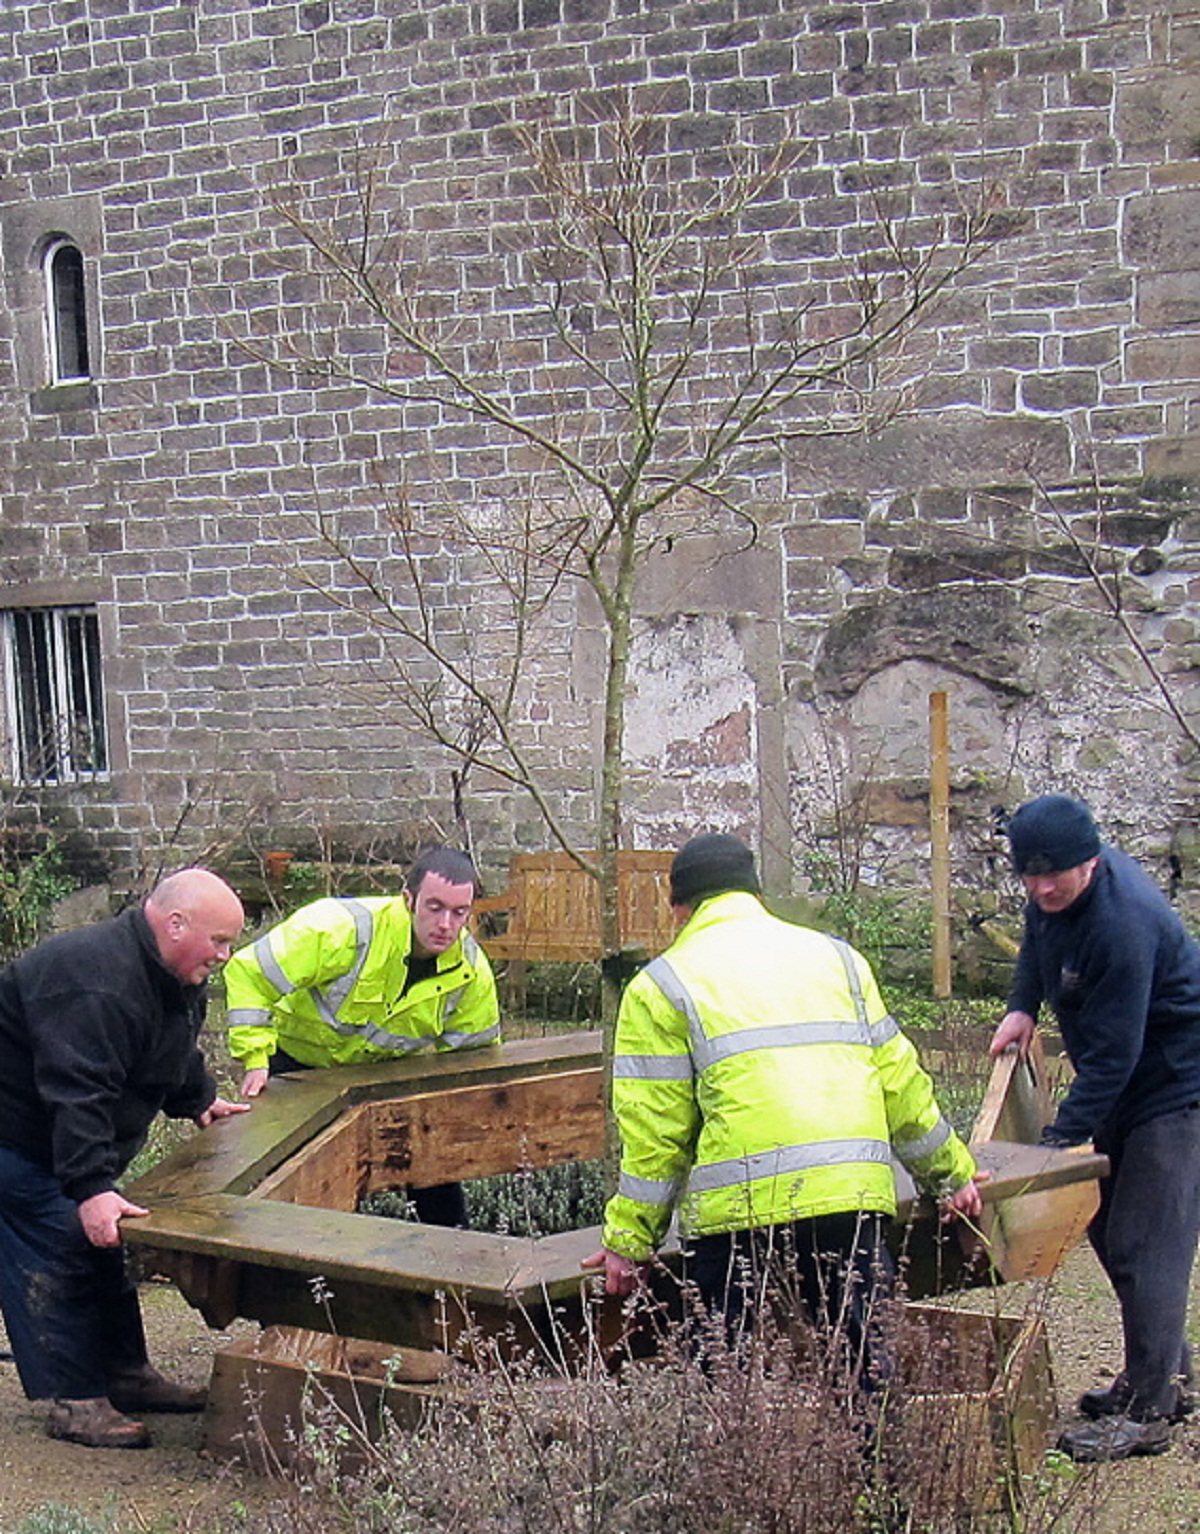 Wooden planters from Urban Garden in Bradford get new home as Westfield work continues